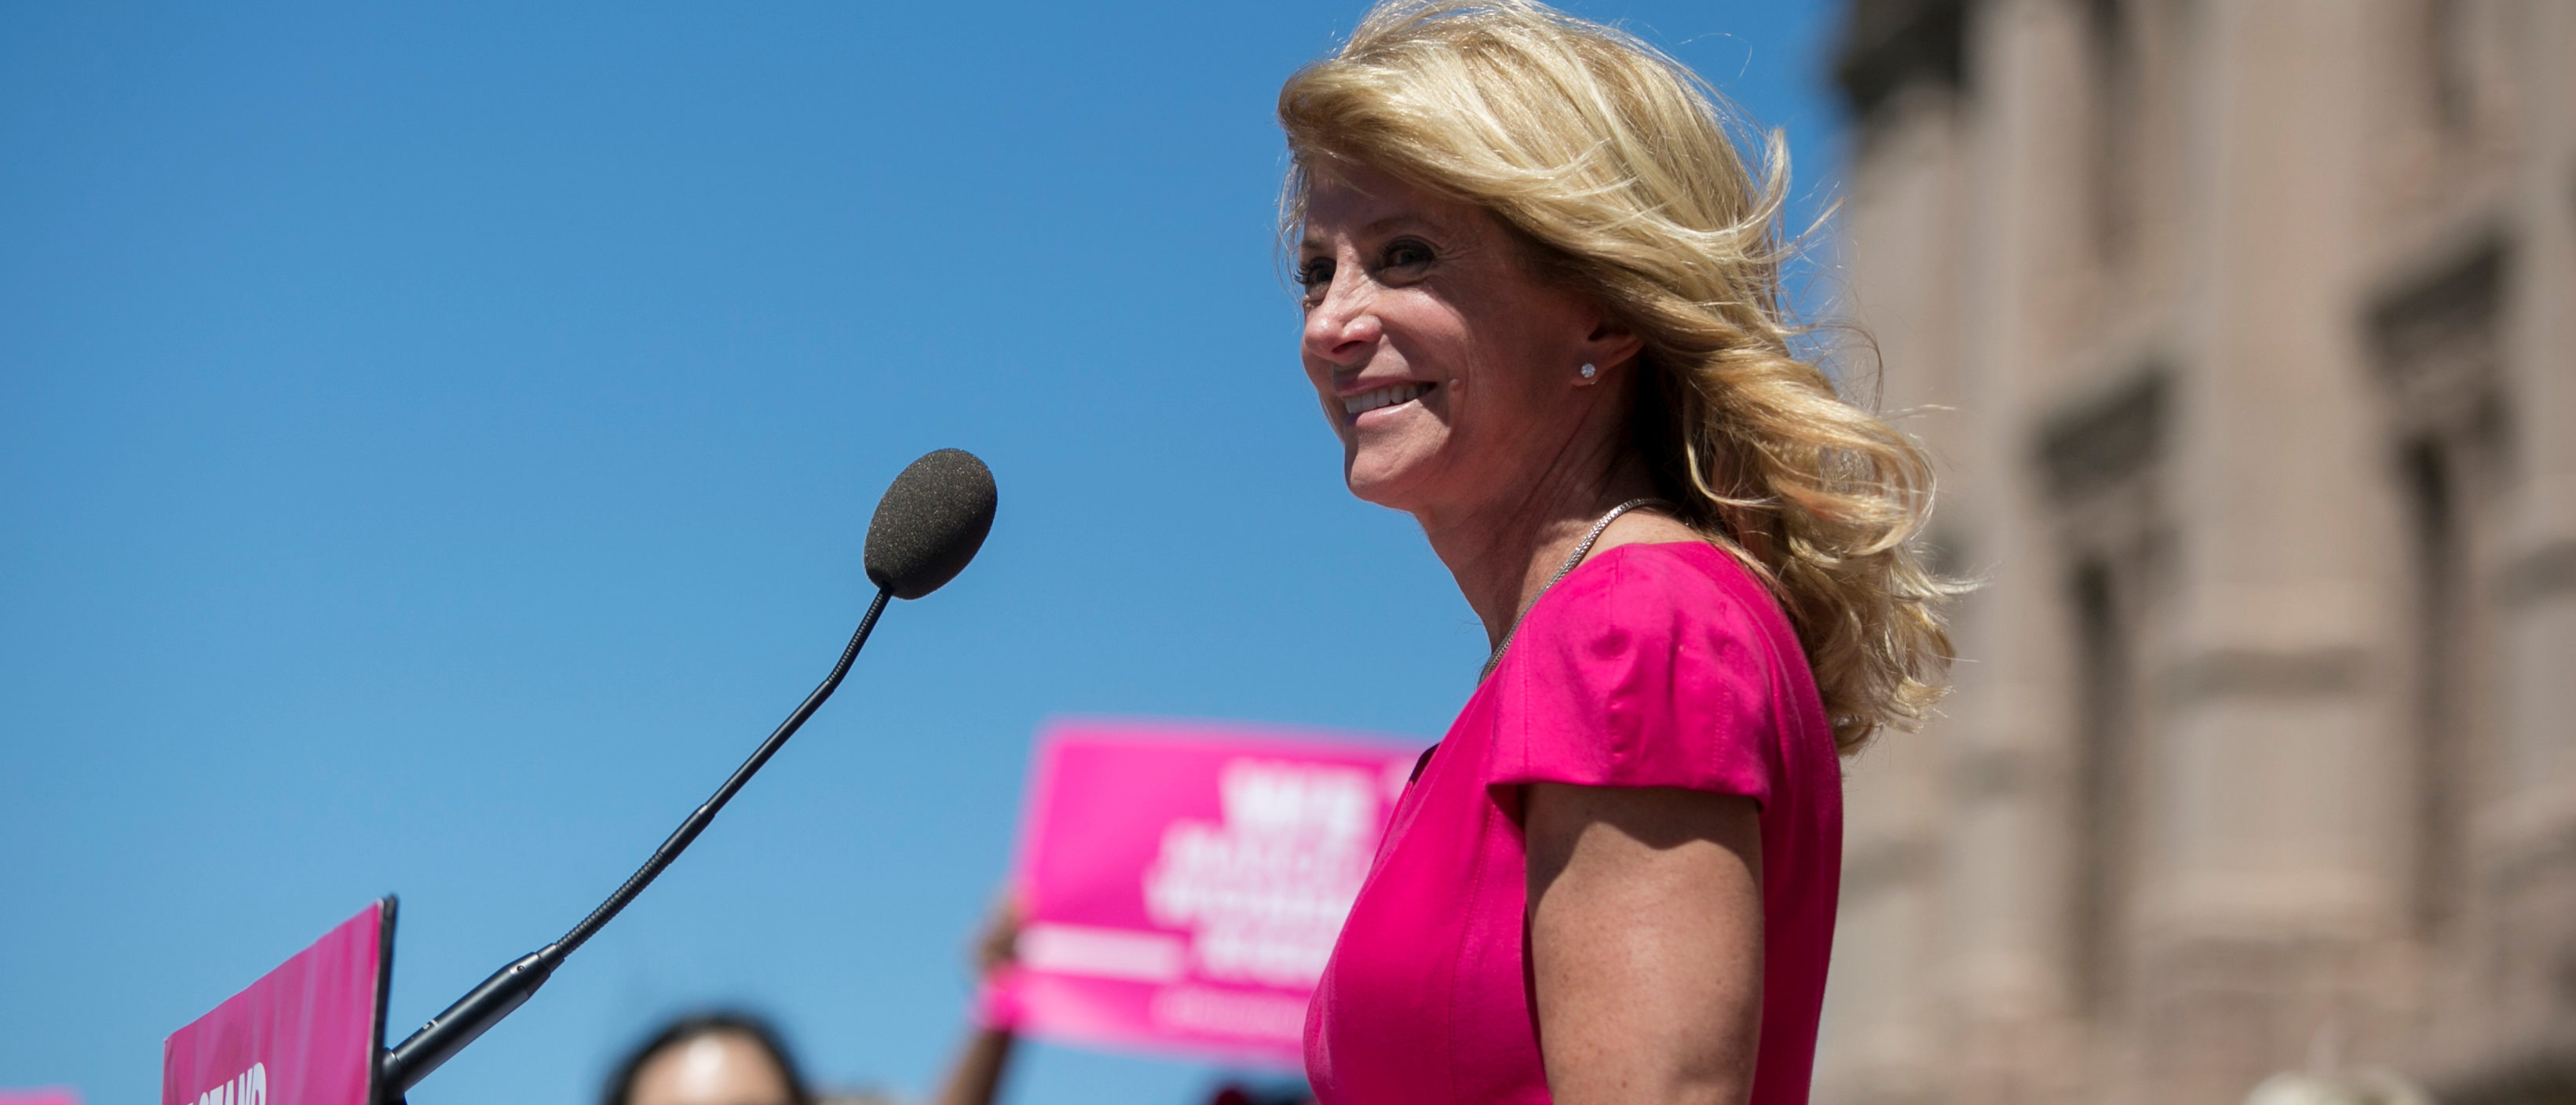 Wendy Davis Officially Announces She's Running For Congress, Rep. Chip Roy's Seat | The Daily Caller